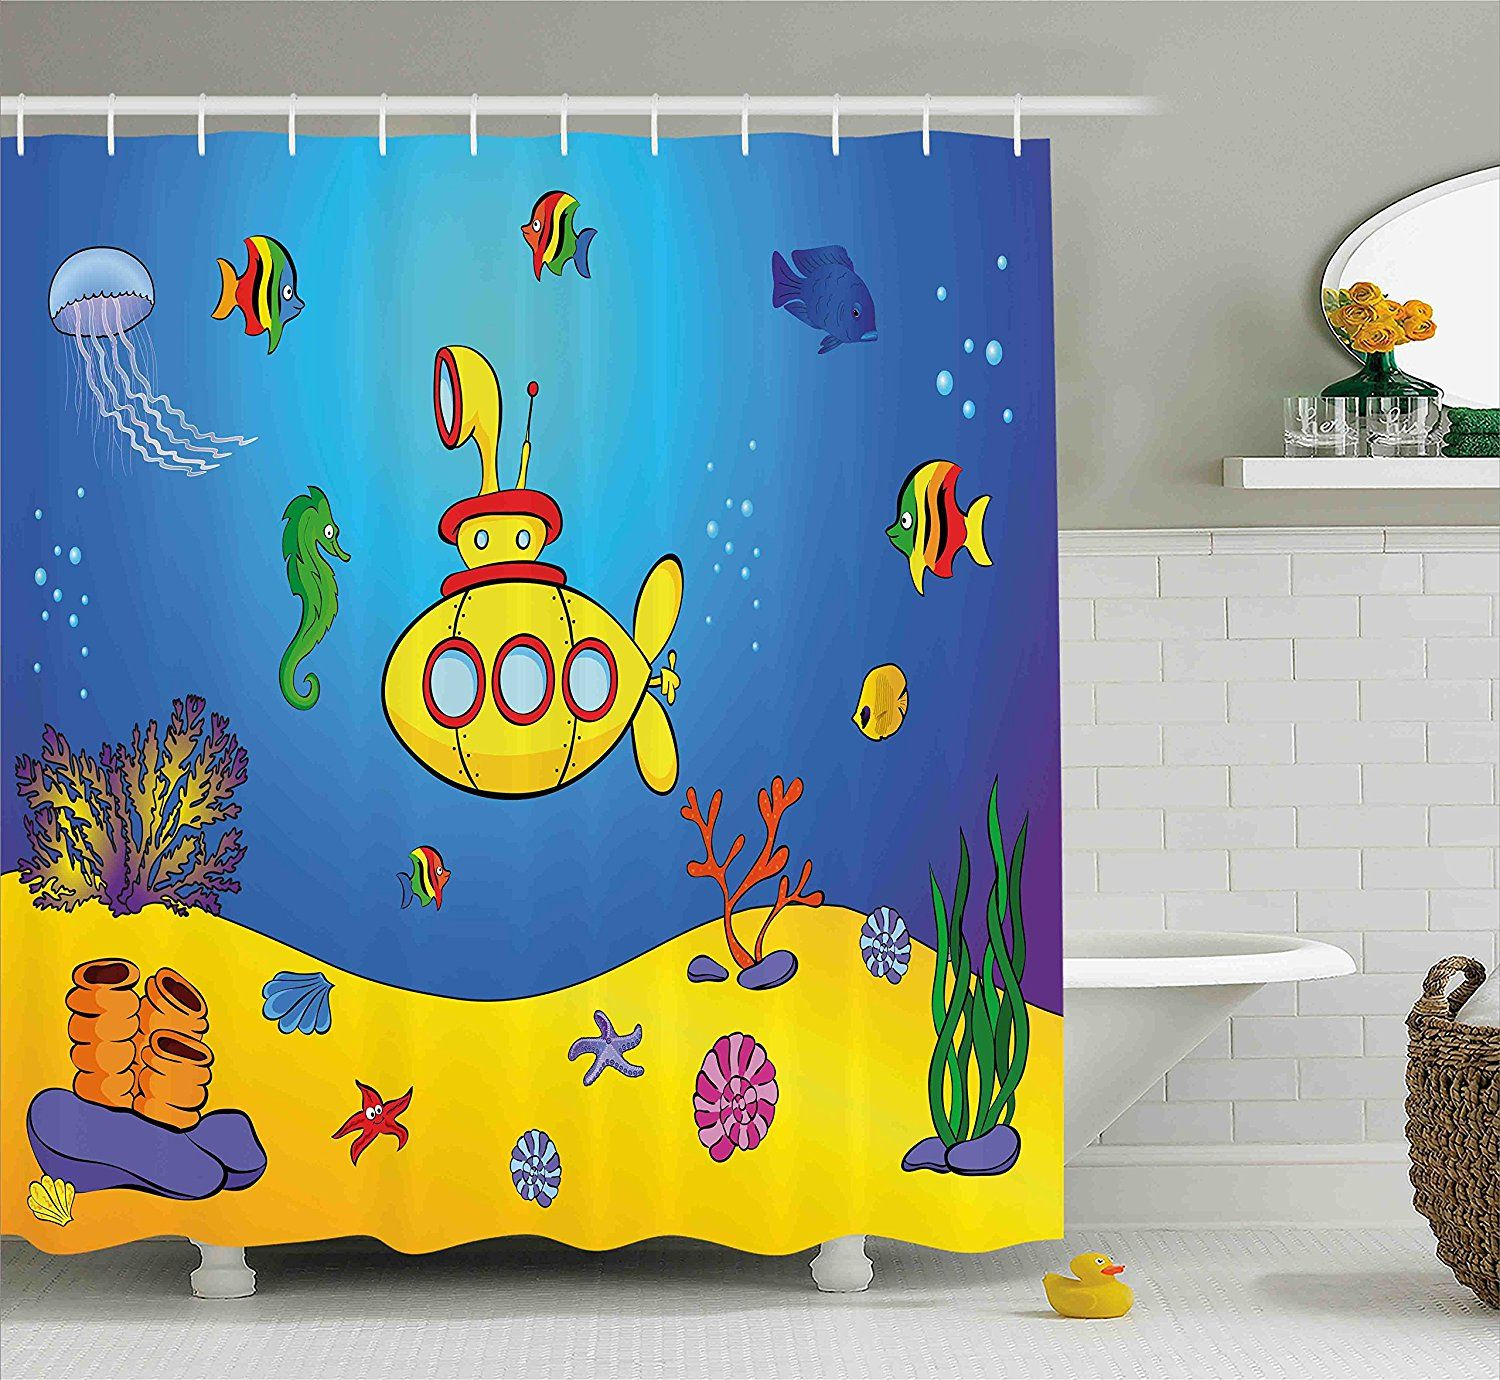 Beatles Yellow Submarine Shower Curtain For The Bathroom